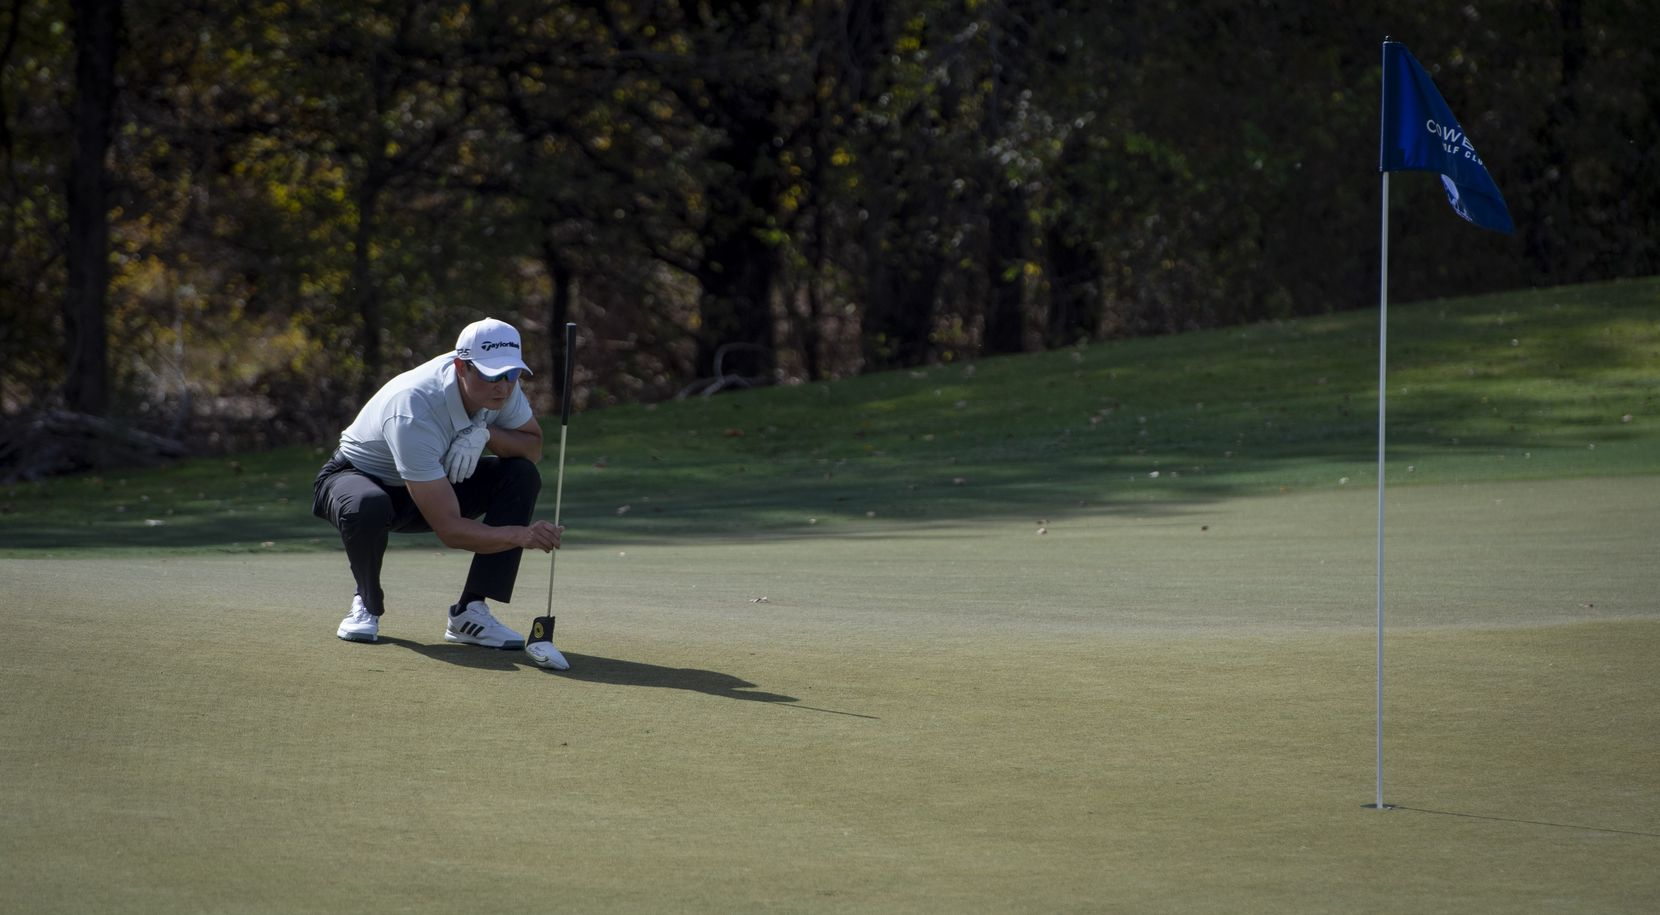 Thomas Hahm of Coppell lined up a putt at Cowboys Golf Club in Grapevine on Nov. 4, 2020.